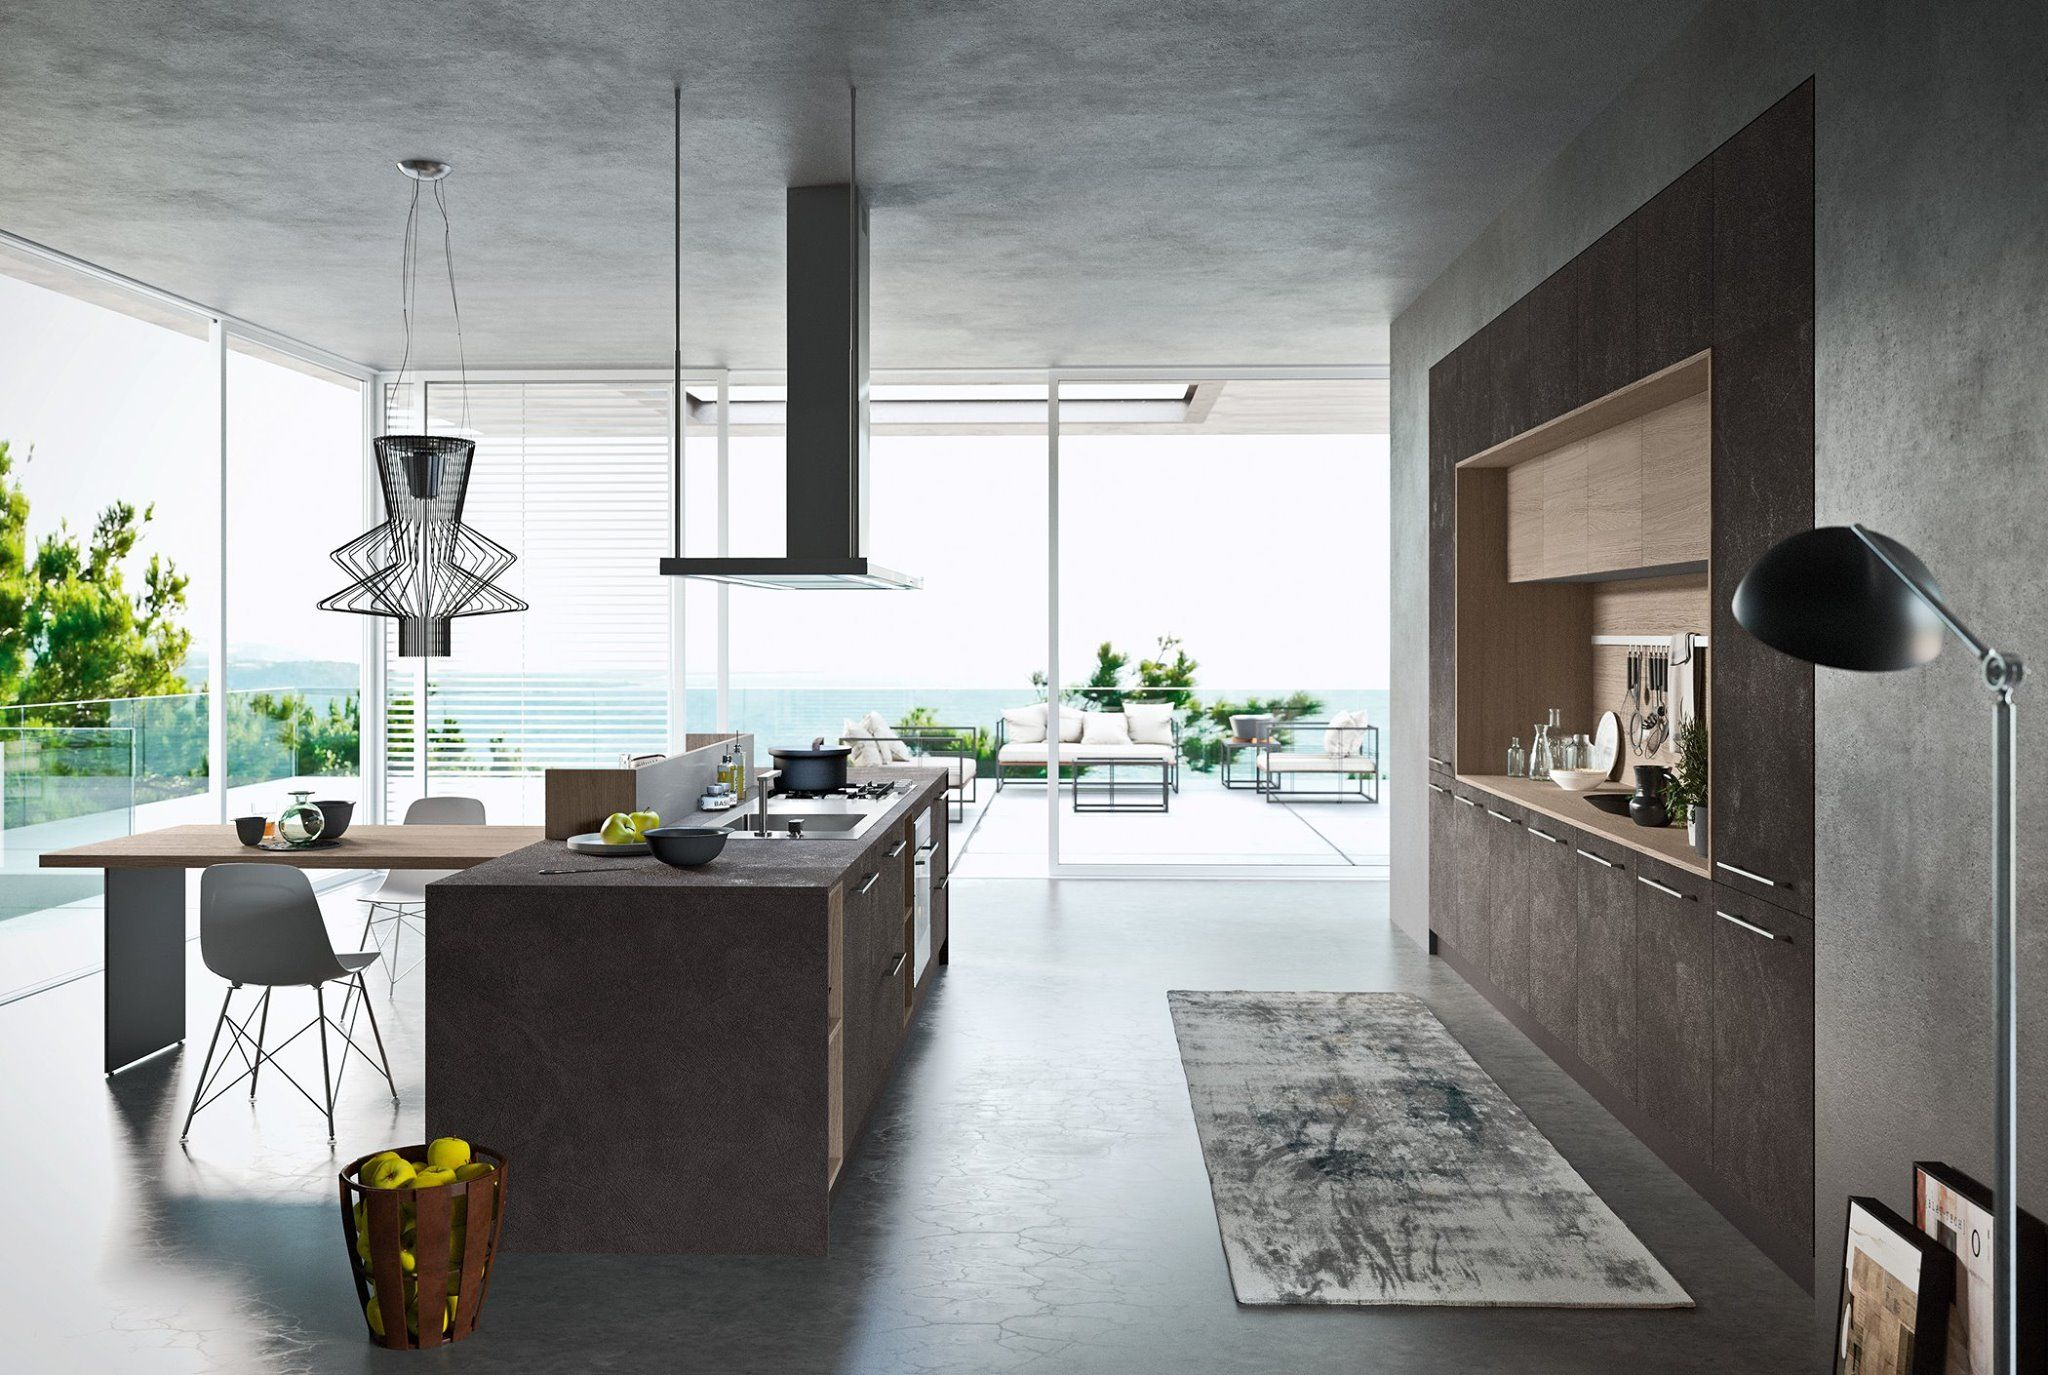 Bieffe Kitchens I Naturali 100 Made In Italy Authentic Italian Made Cabinets In Stock For The First Time In America Furniture Home Decor Engineered Wood